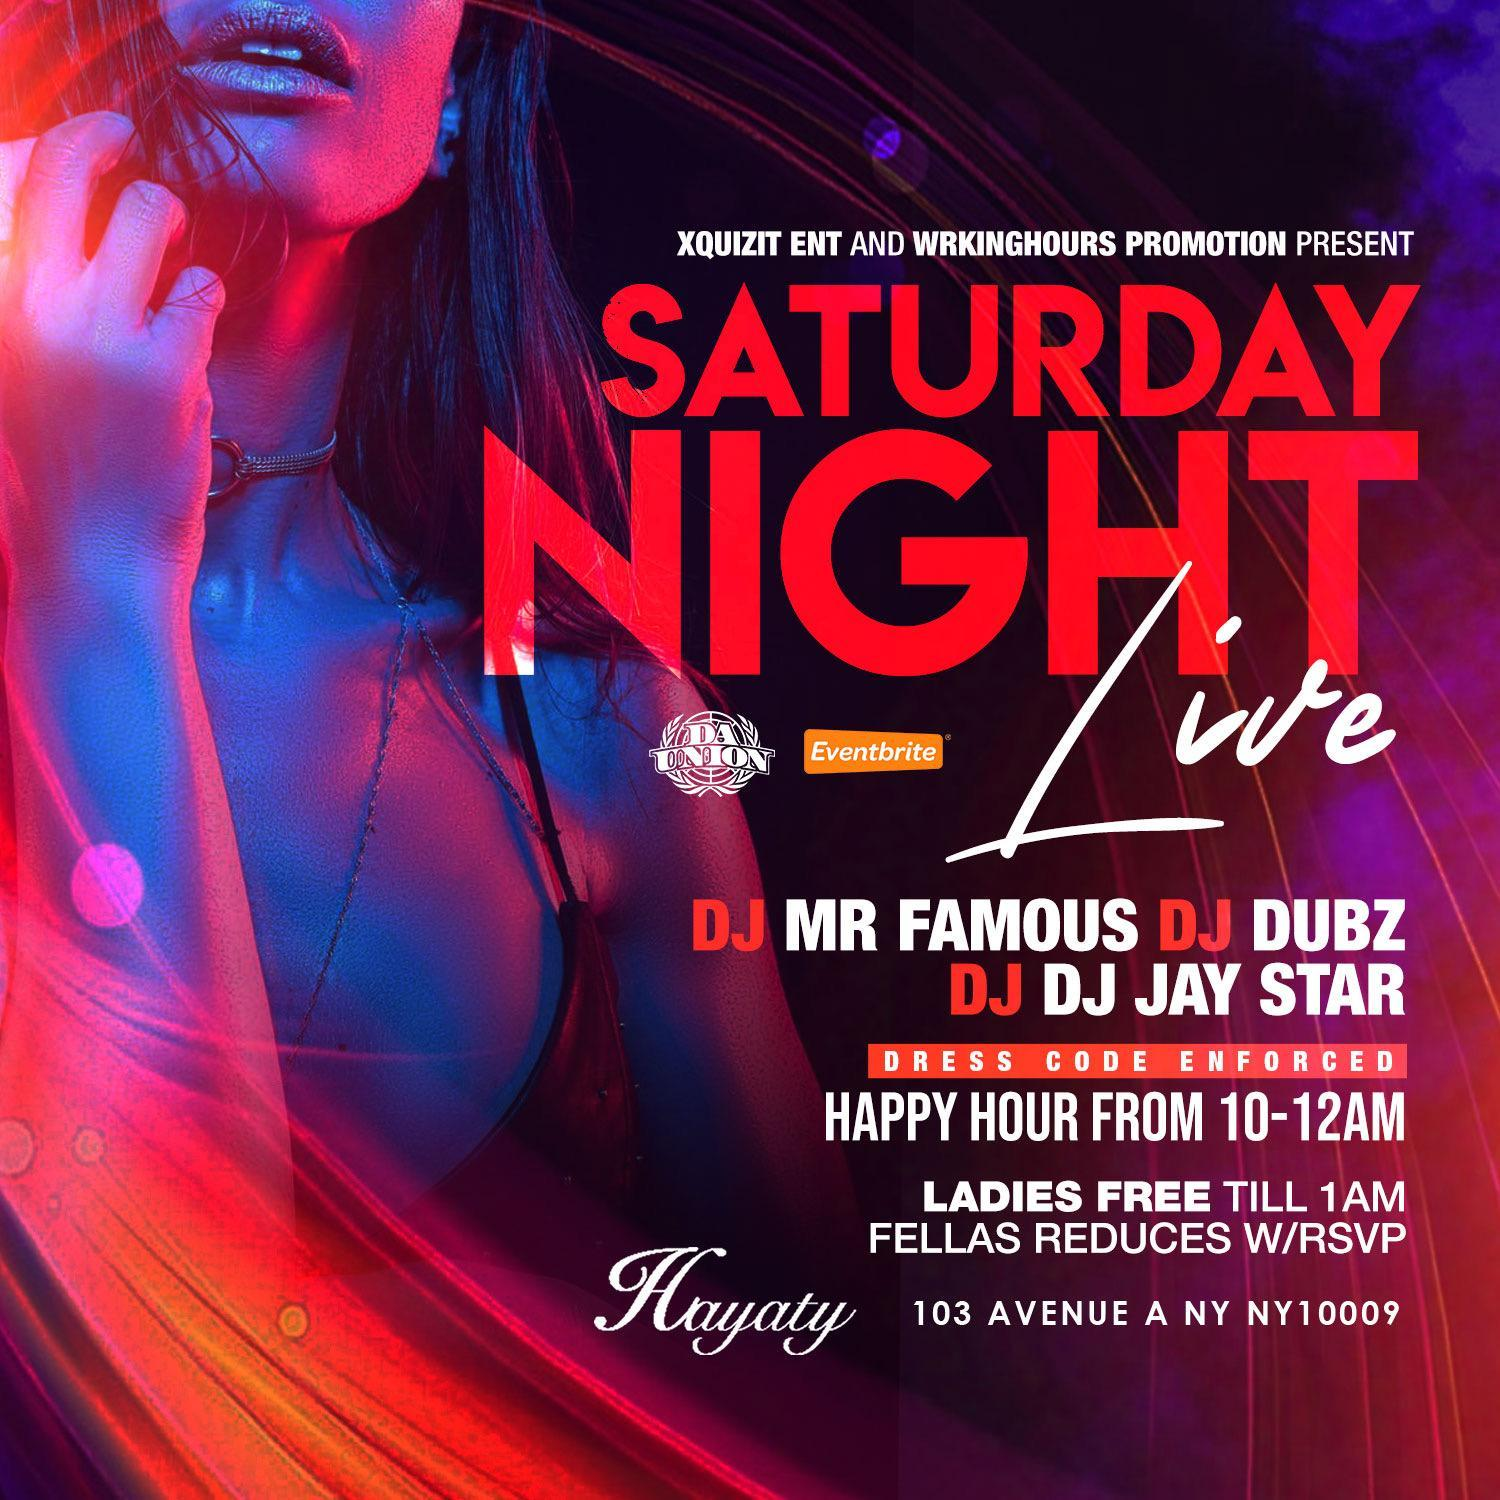 Saturday Night Live (FREE ENTRY) #SNLSaturdays